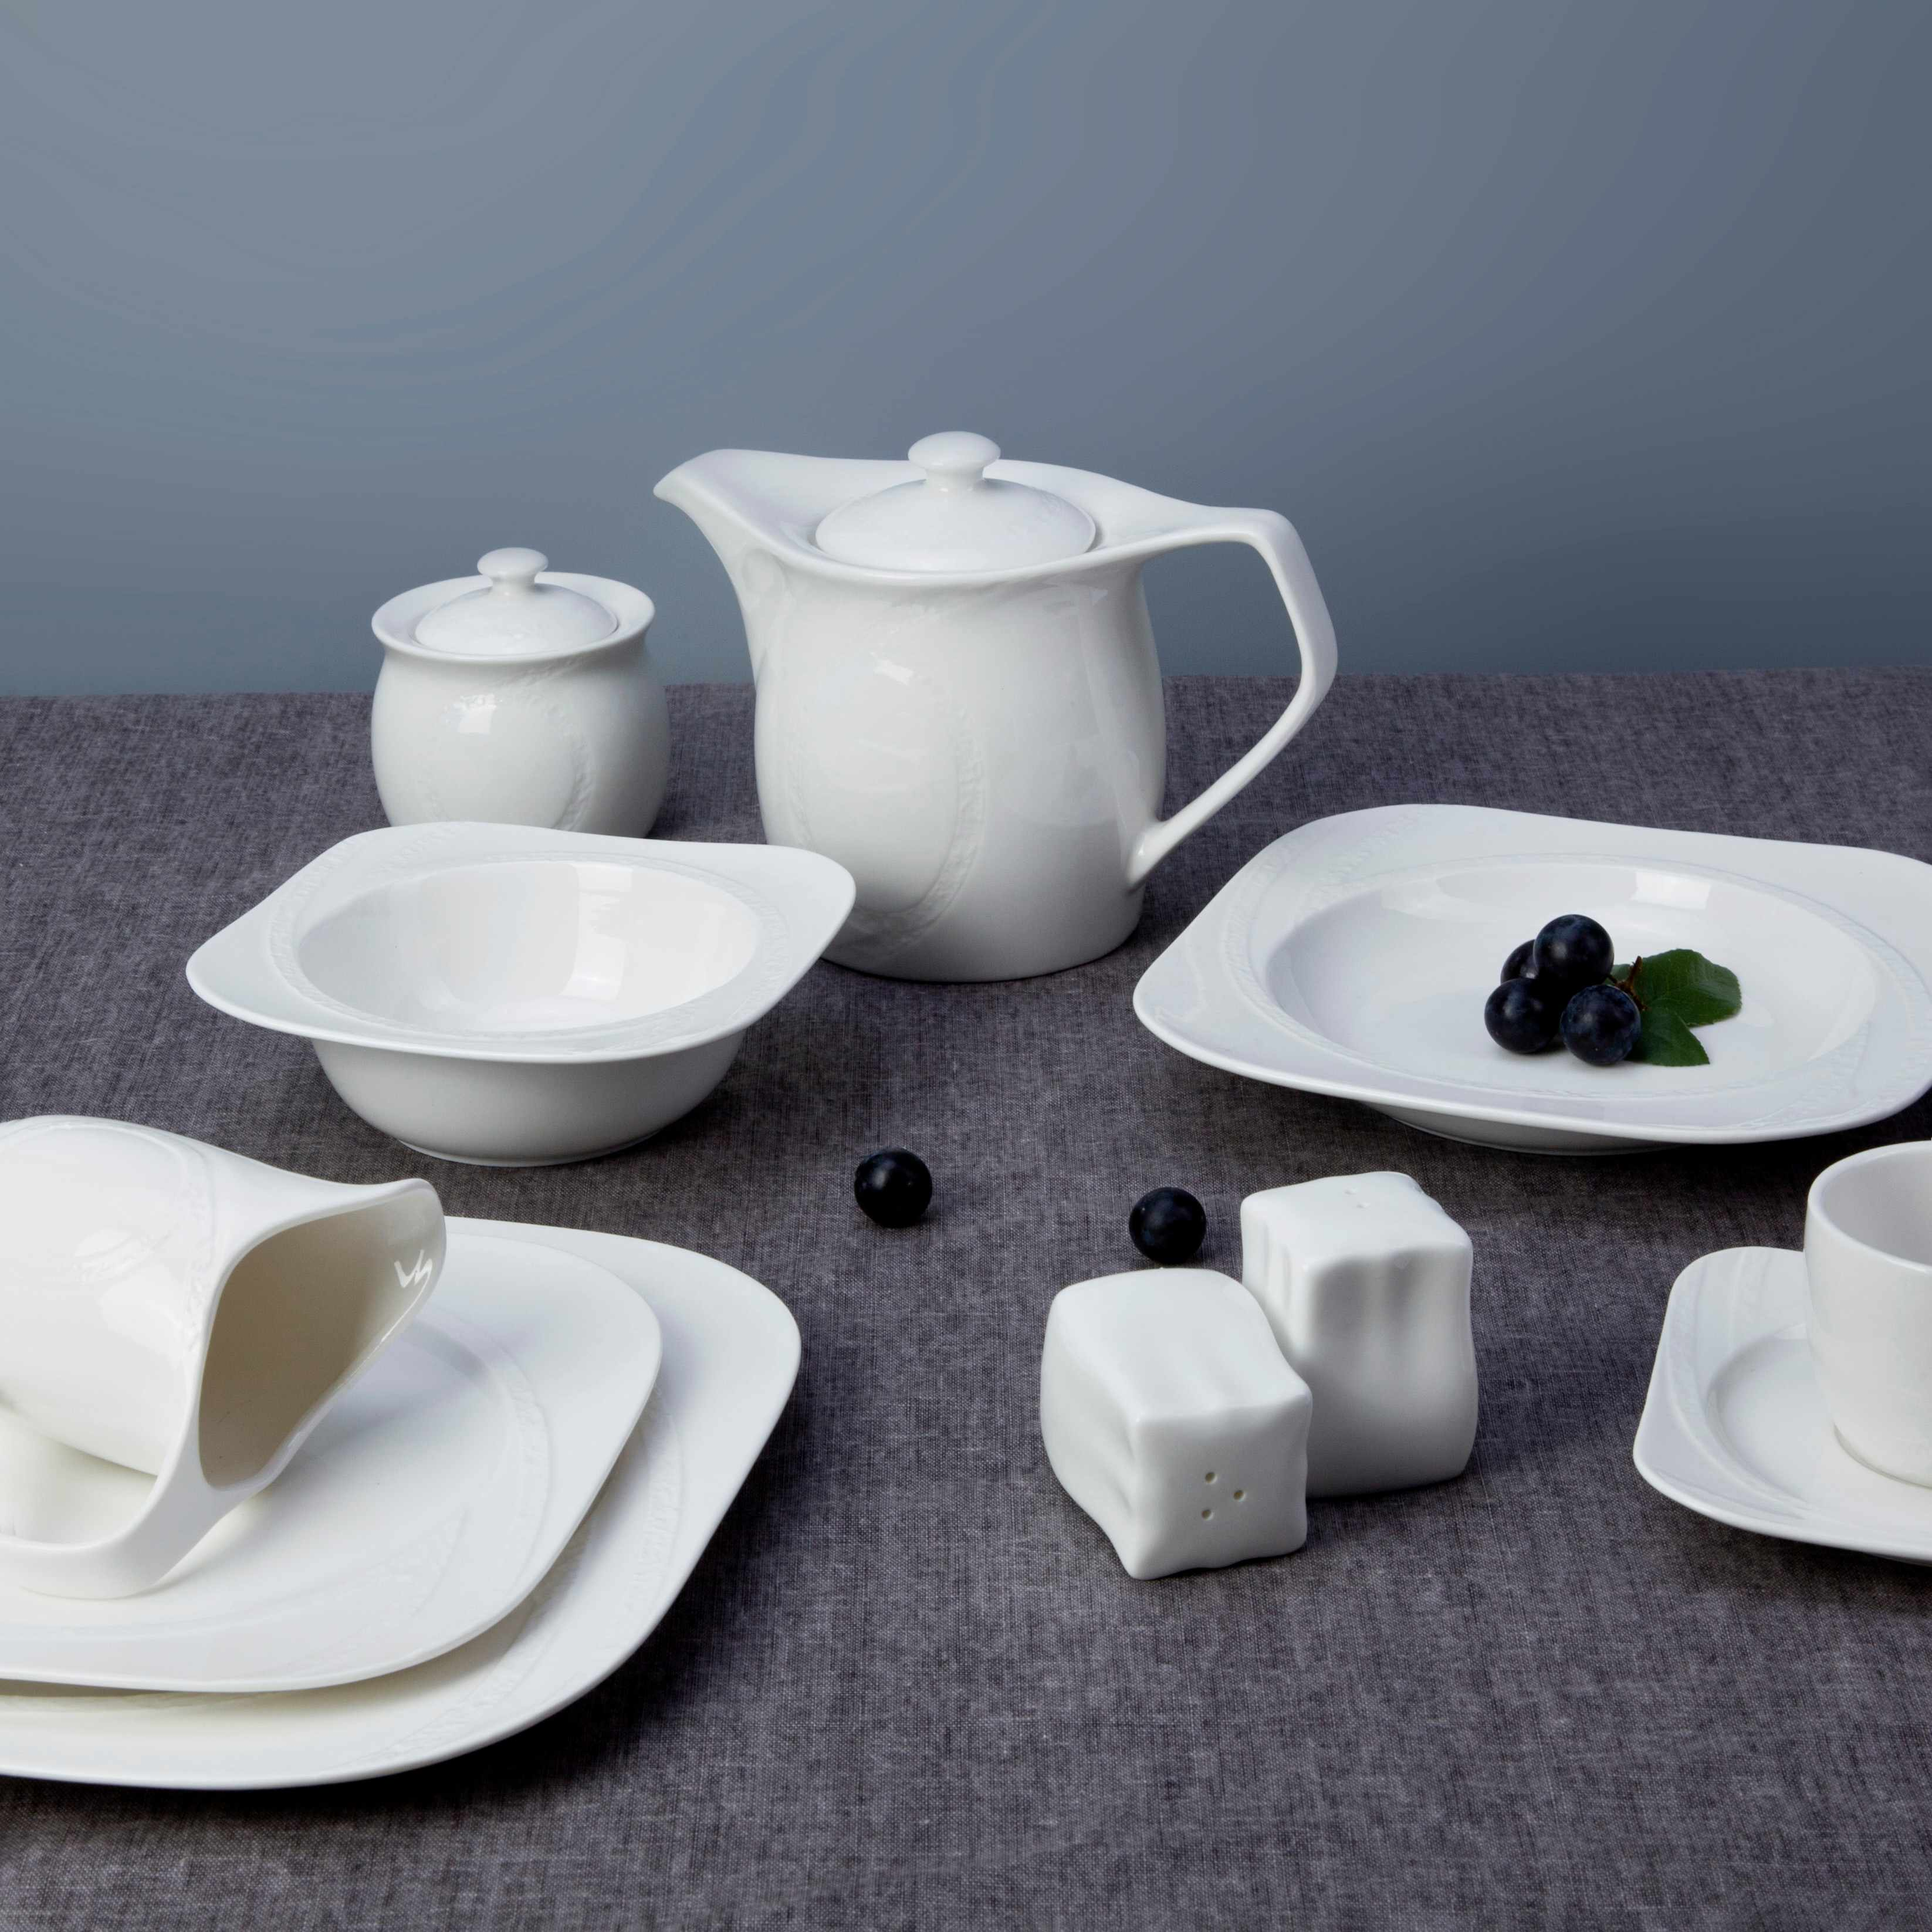 Two Eight White ceramic dinnerware set - JIN SUO TU WEN SERIES White Porcelain Dinner Set image12